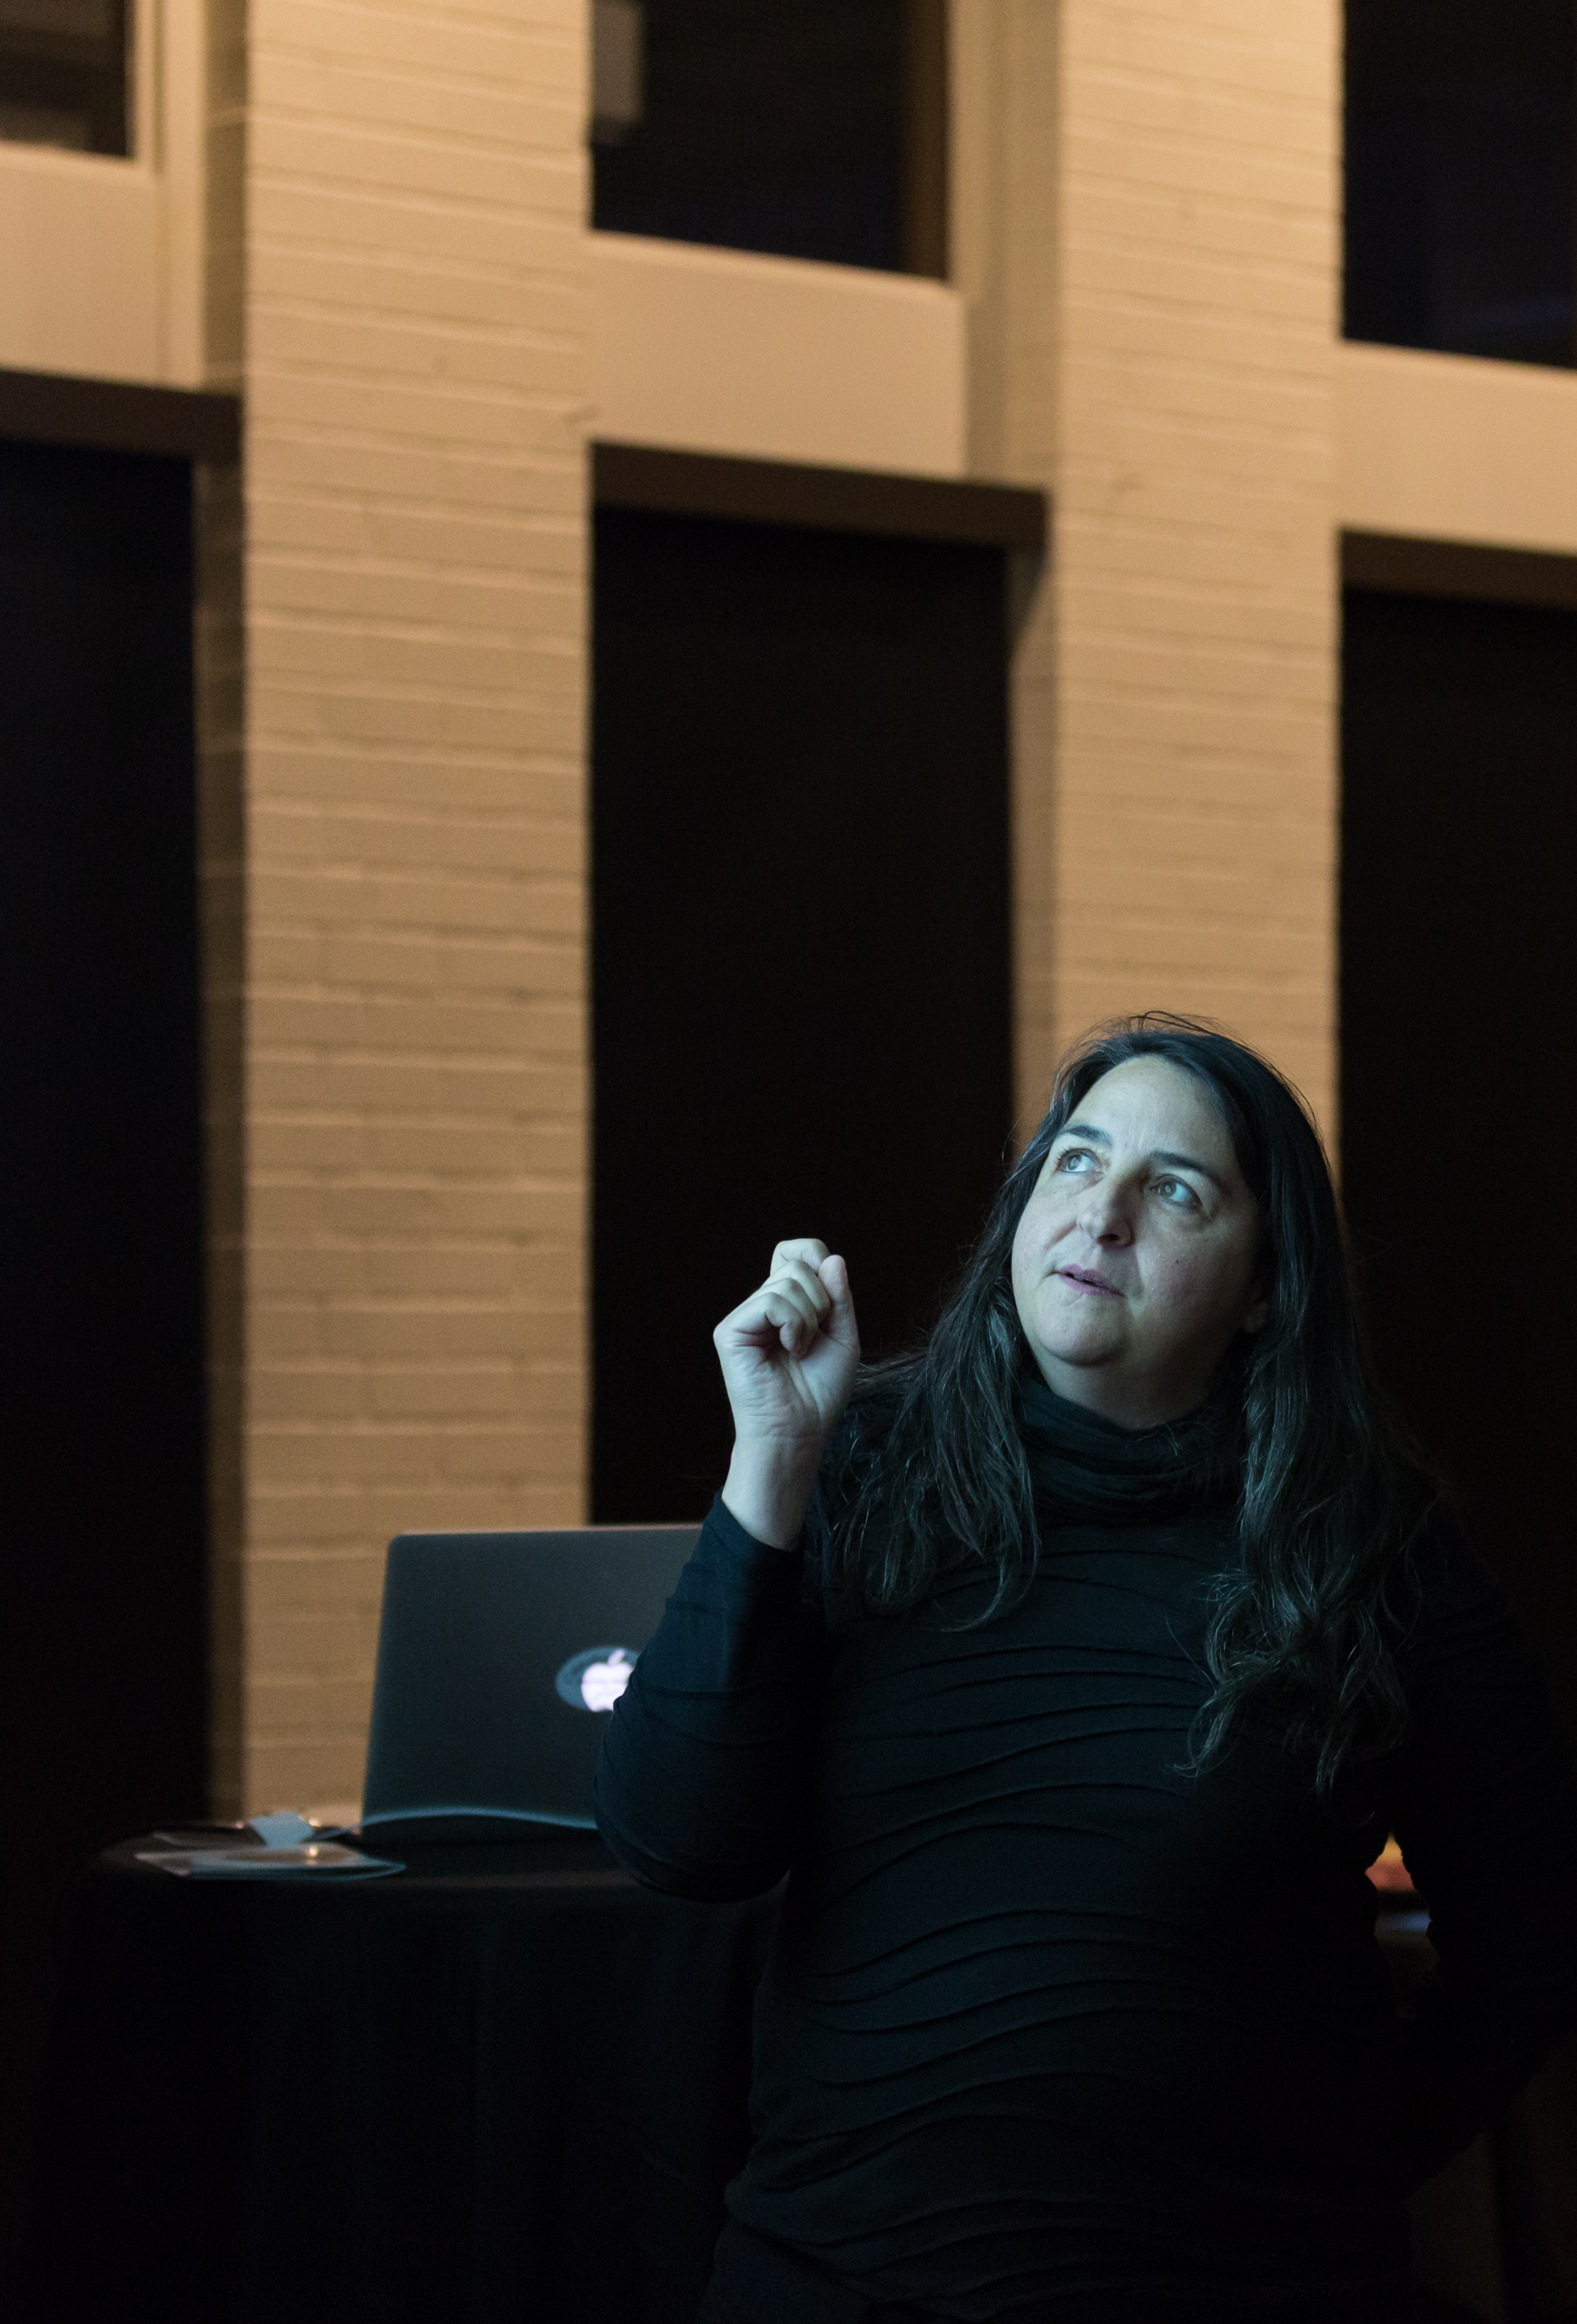 Photo of Lisa Myers presenting a lecture in a darkened room, pointing and looking upward at a projection screen behind her